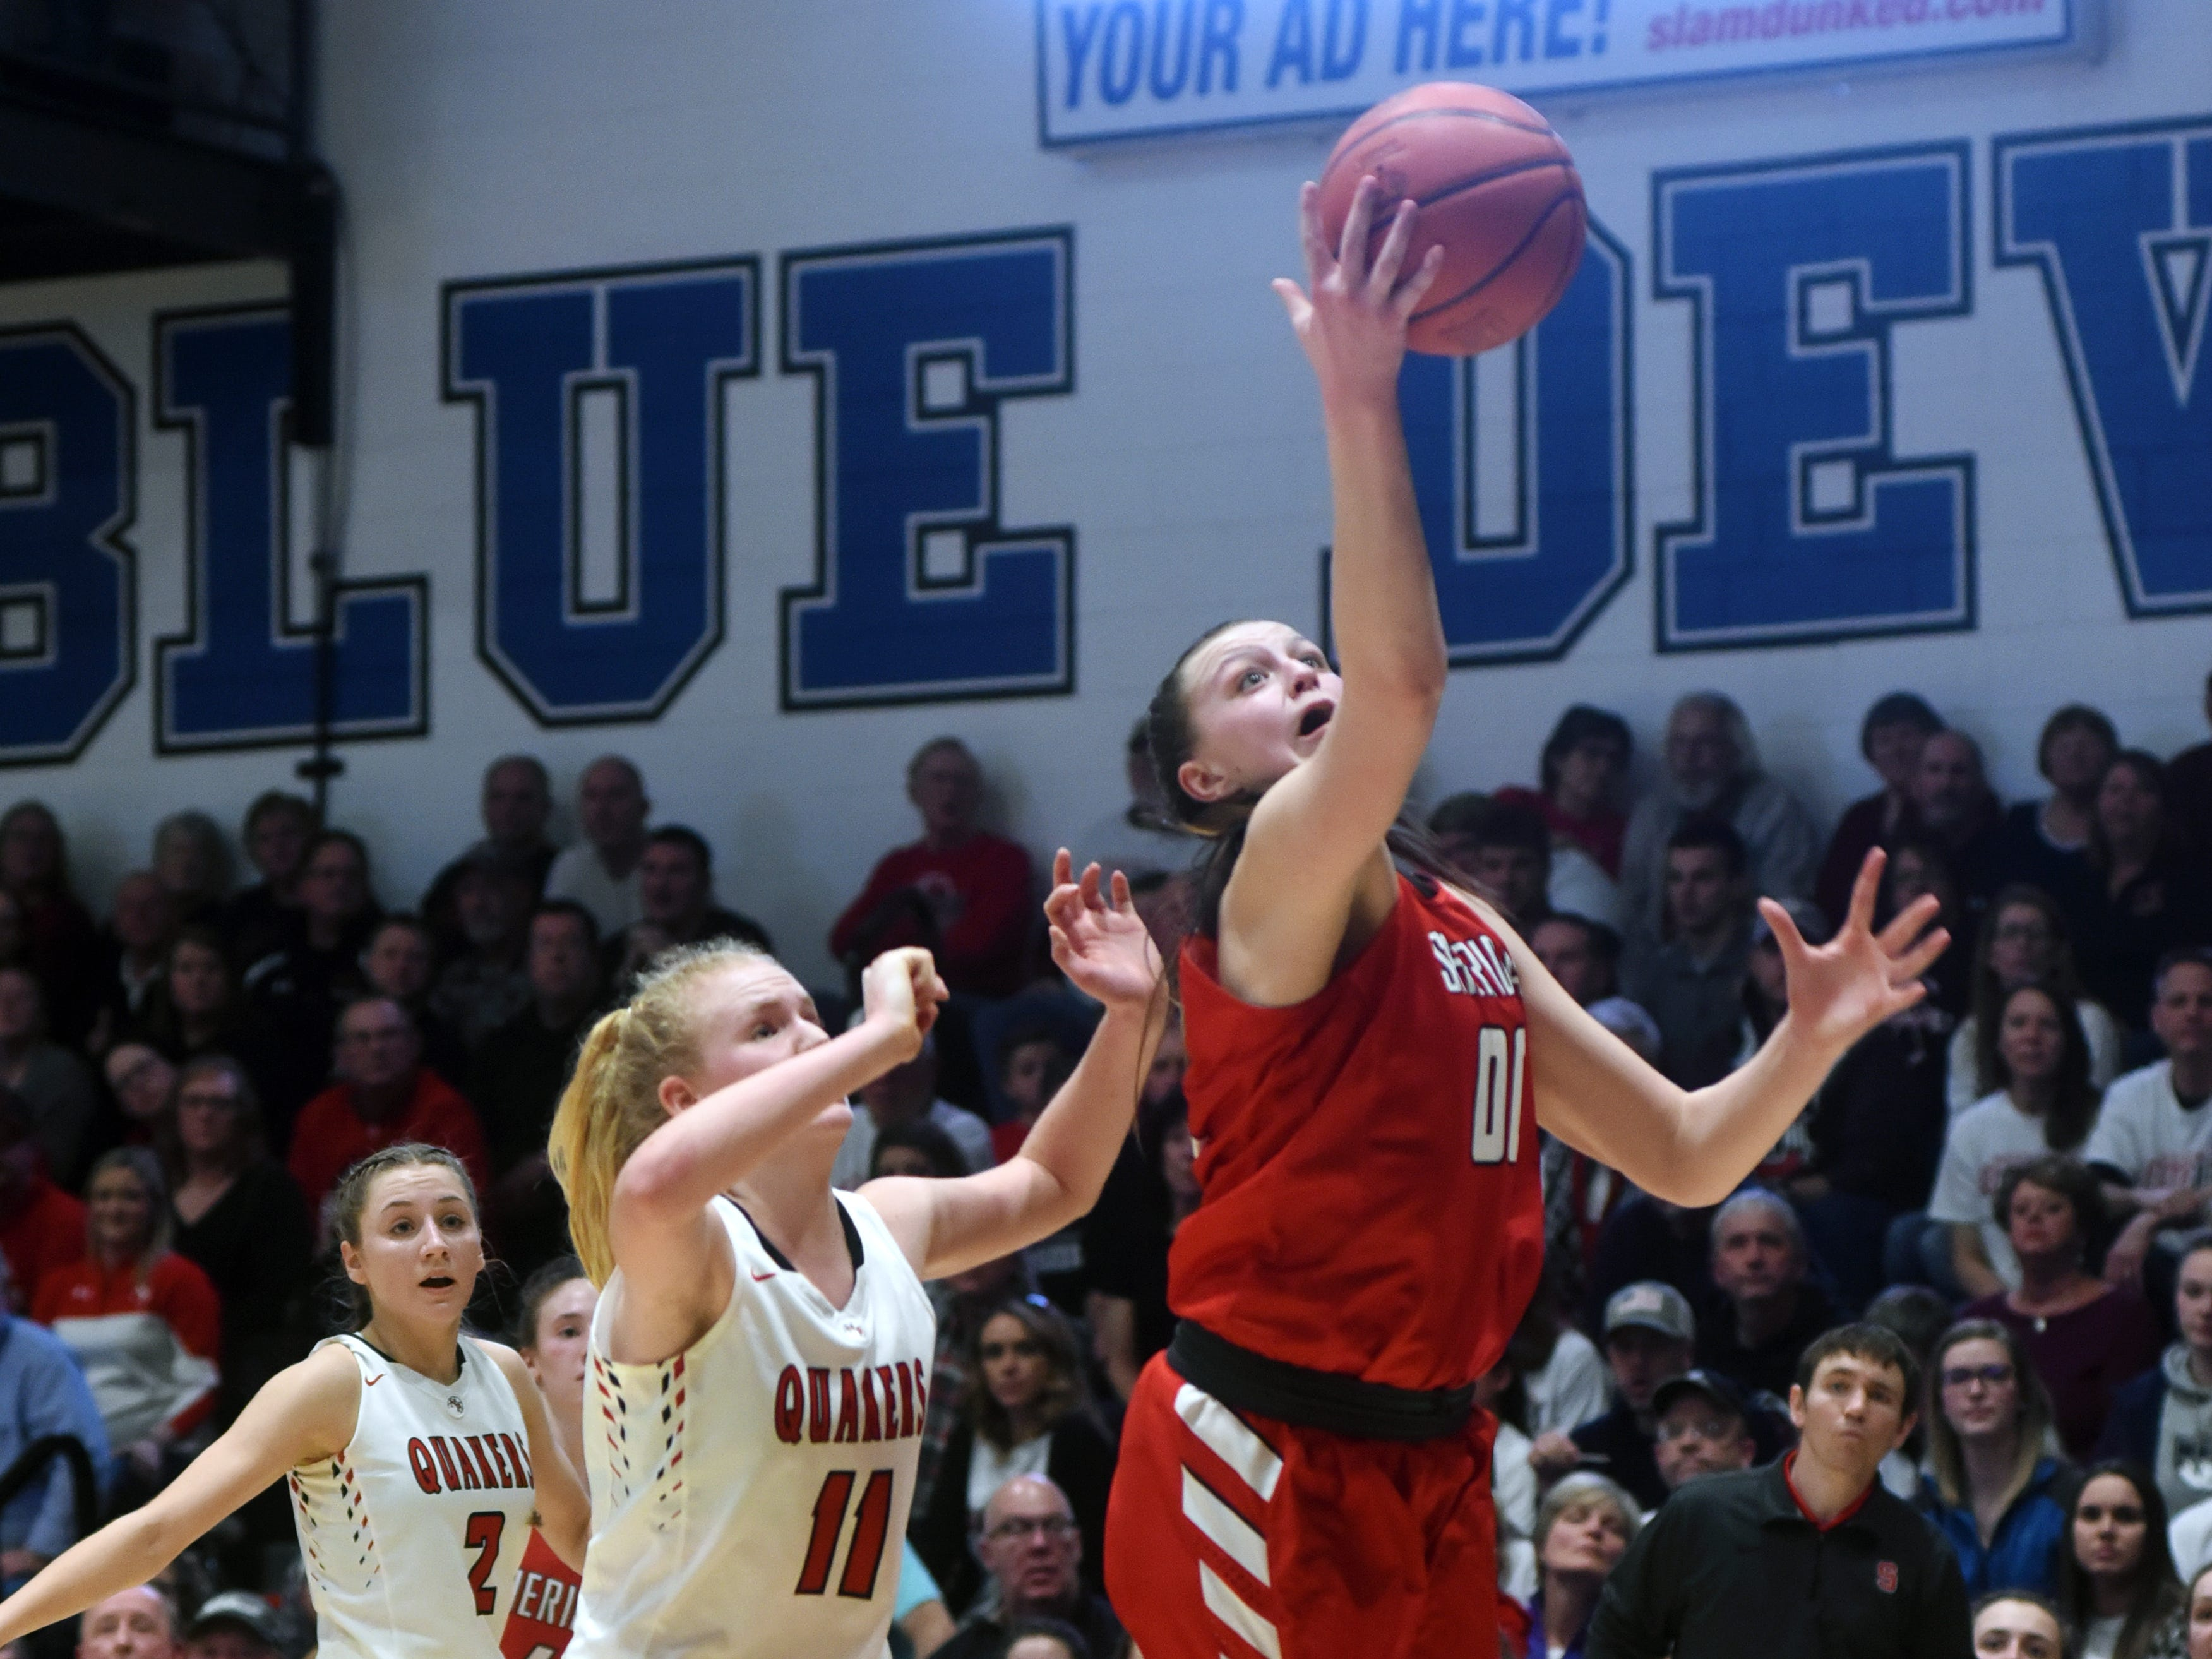 Faith Stinson, of Sheridan, pulls down a rebound against New Philadelphia. Sheridan reached its first state tournament since 2004 with a 48-46 win on Friday night at Winland Memorial Gymnasium.